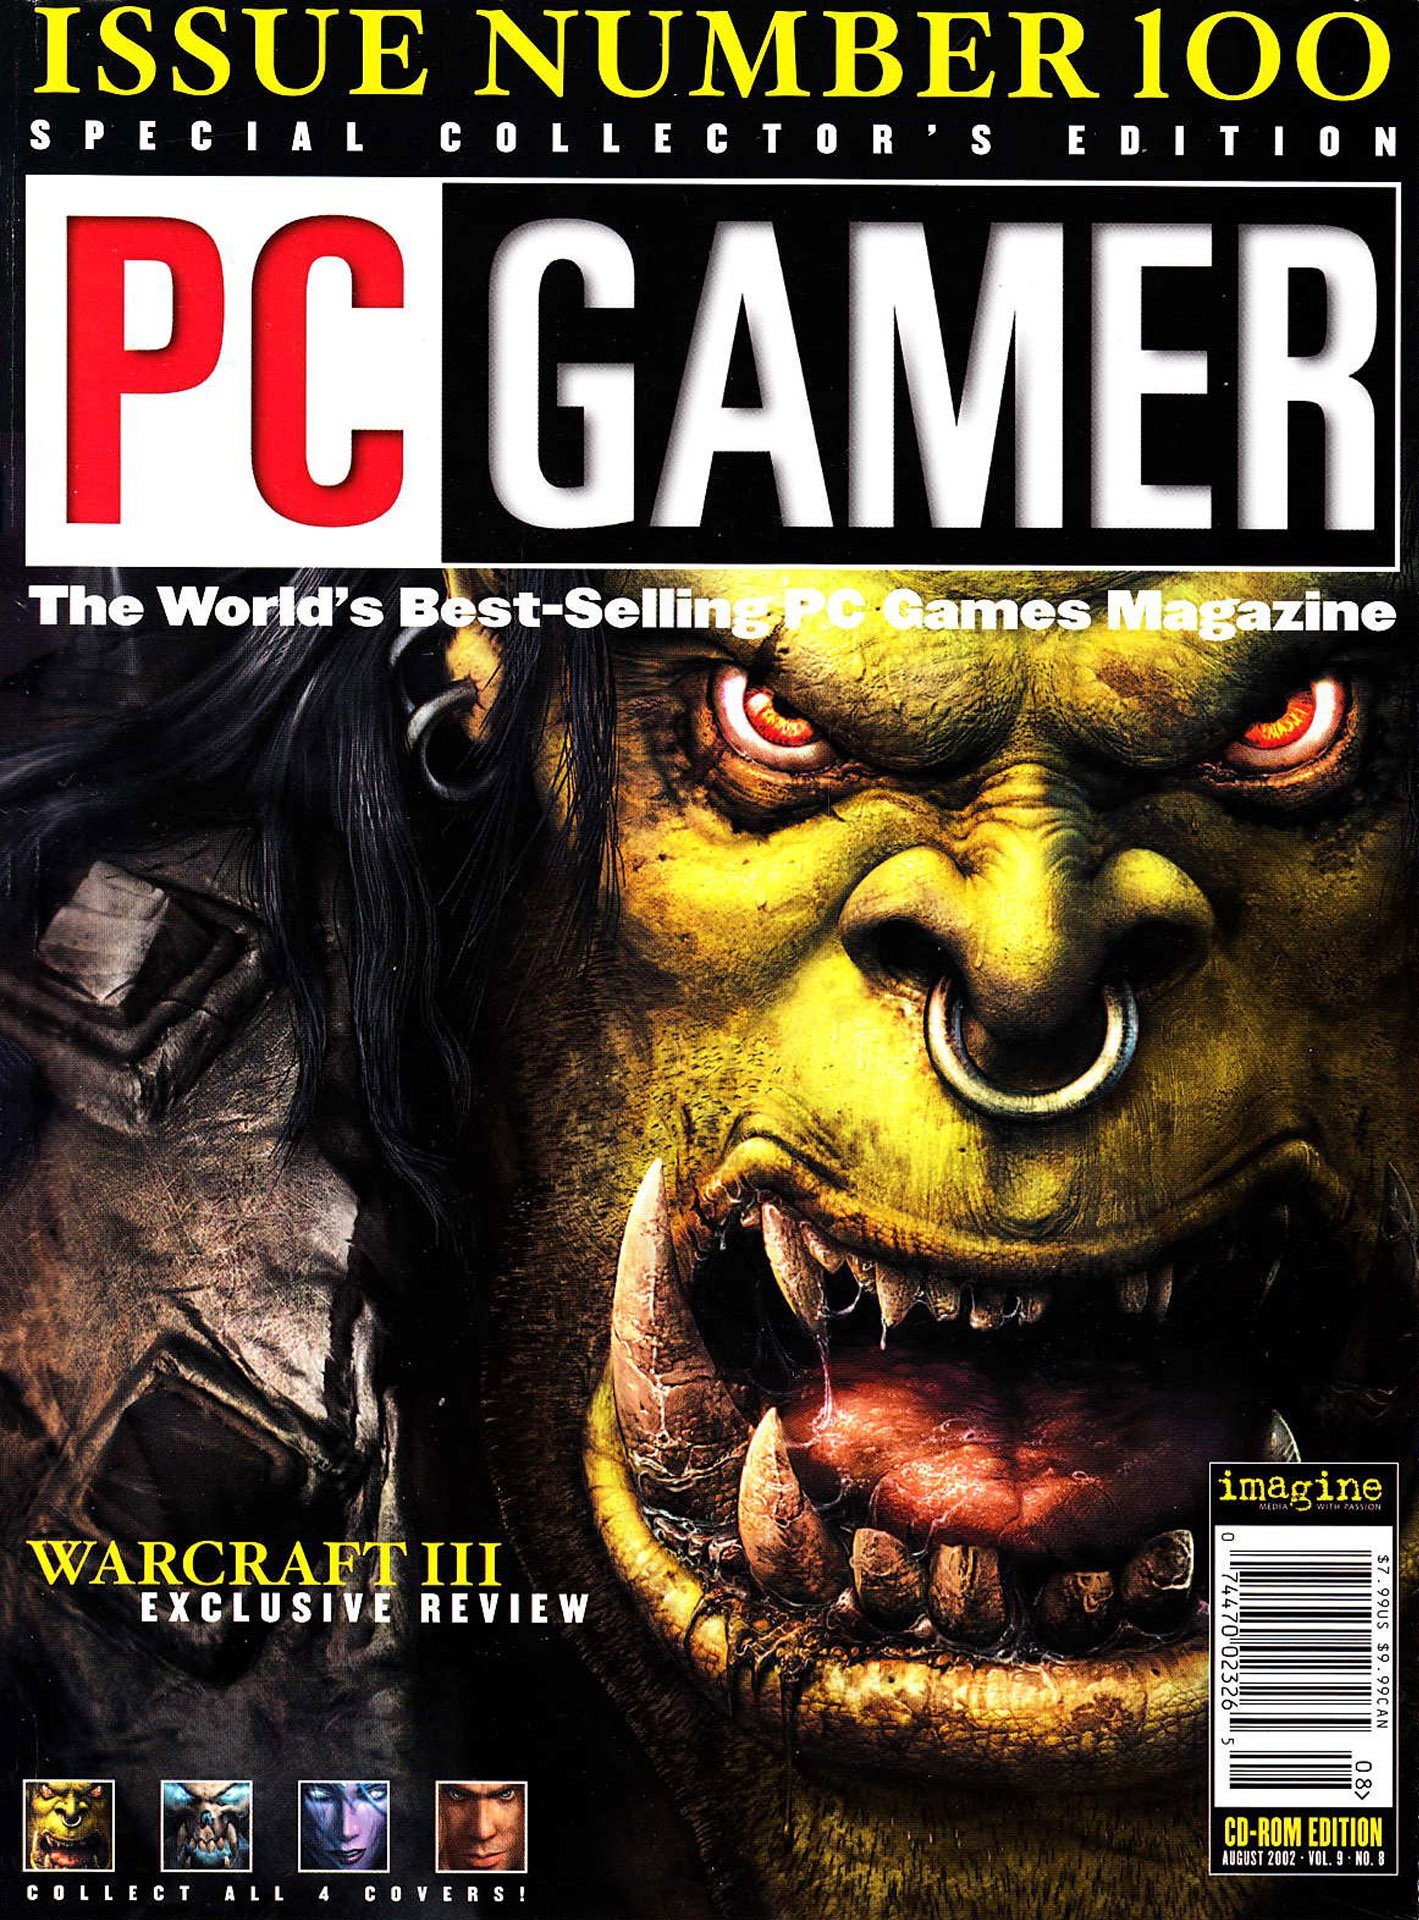 PC Gamer Issue 100 (August 2002) (cover a)